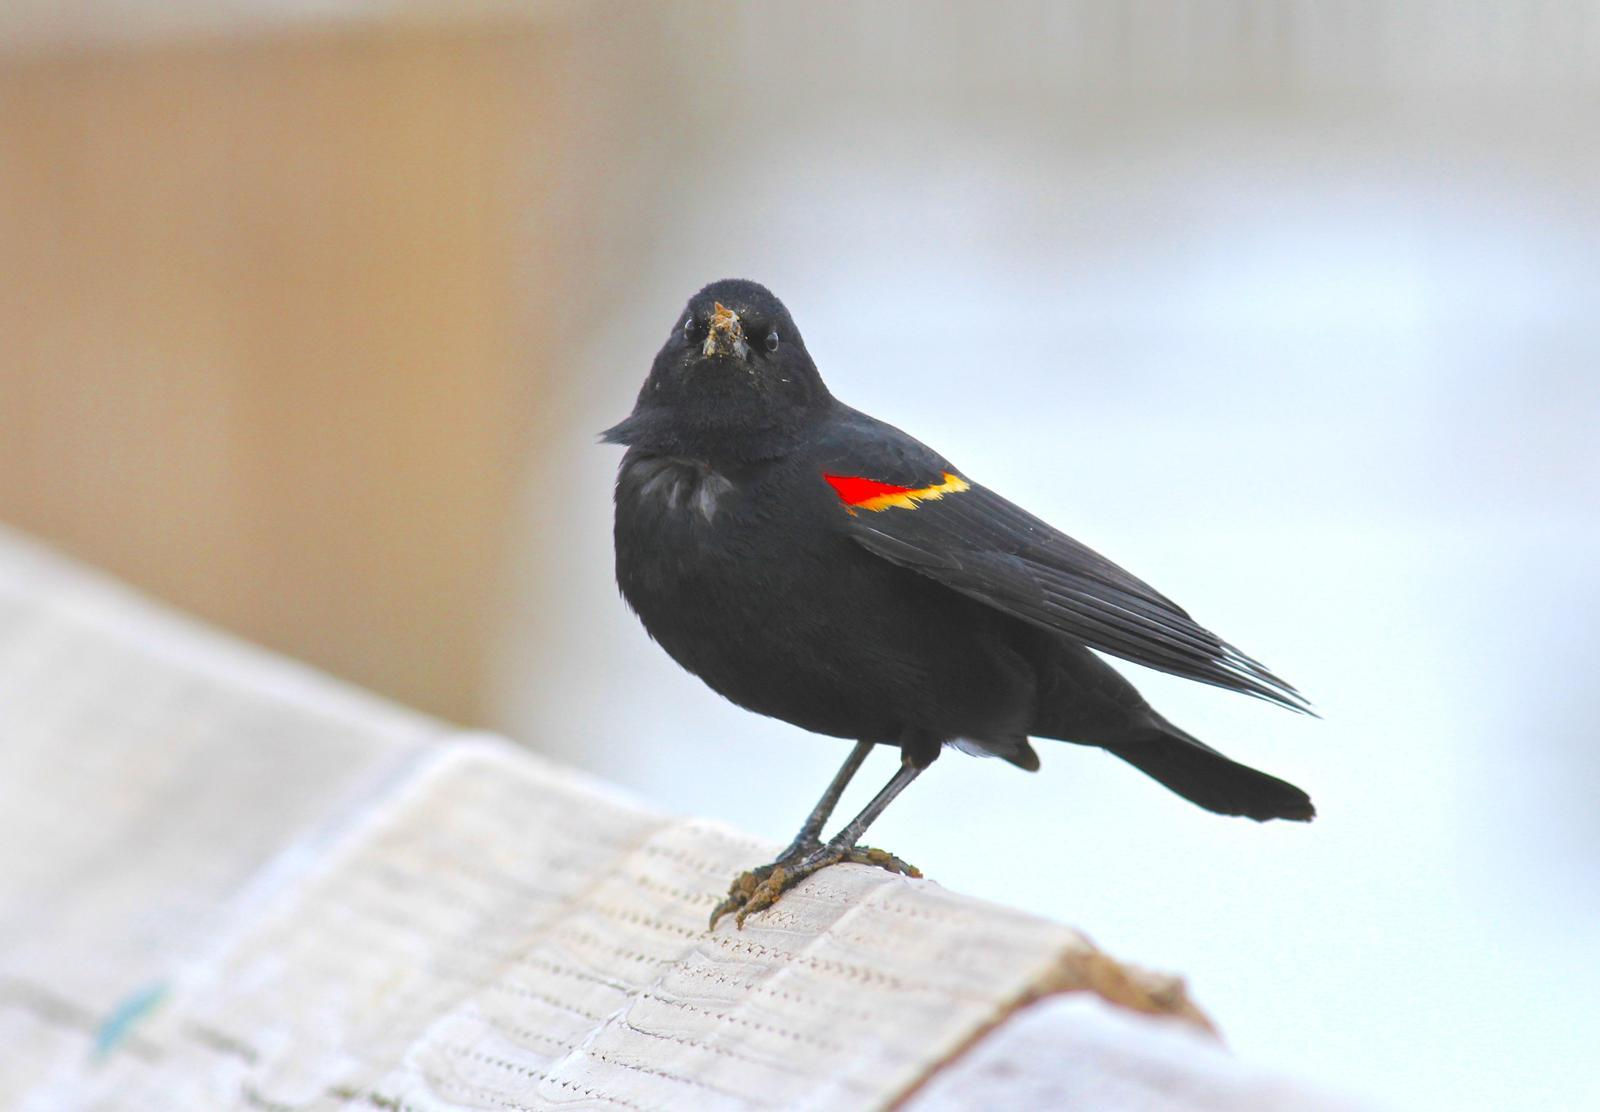 Red-winged Blackbird Photo by Kathryn Keith